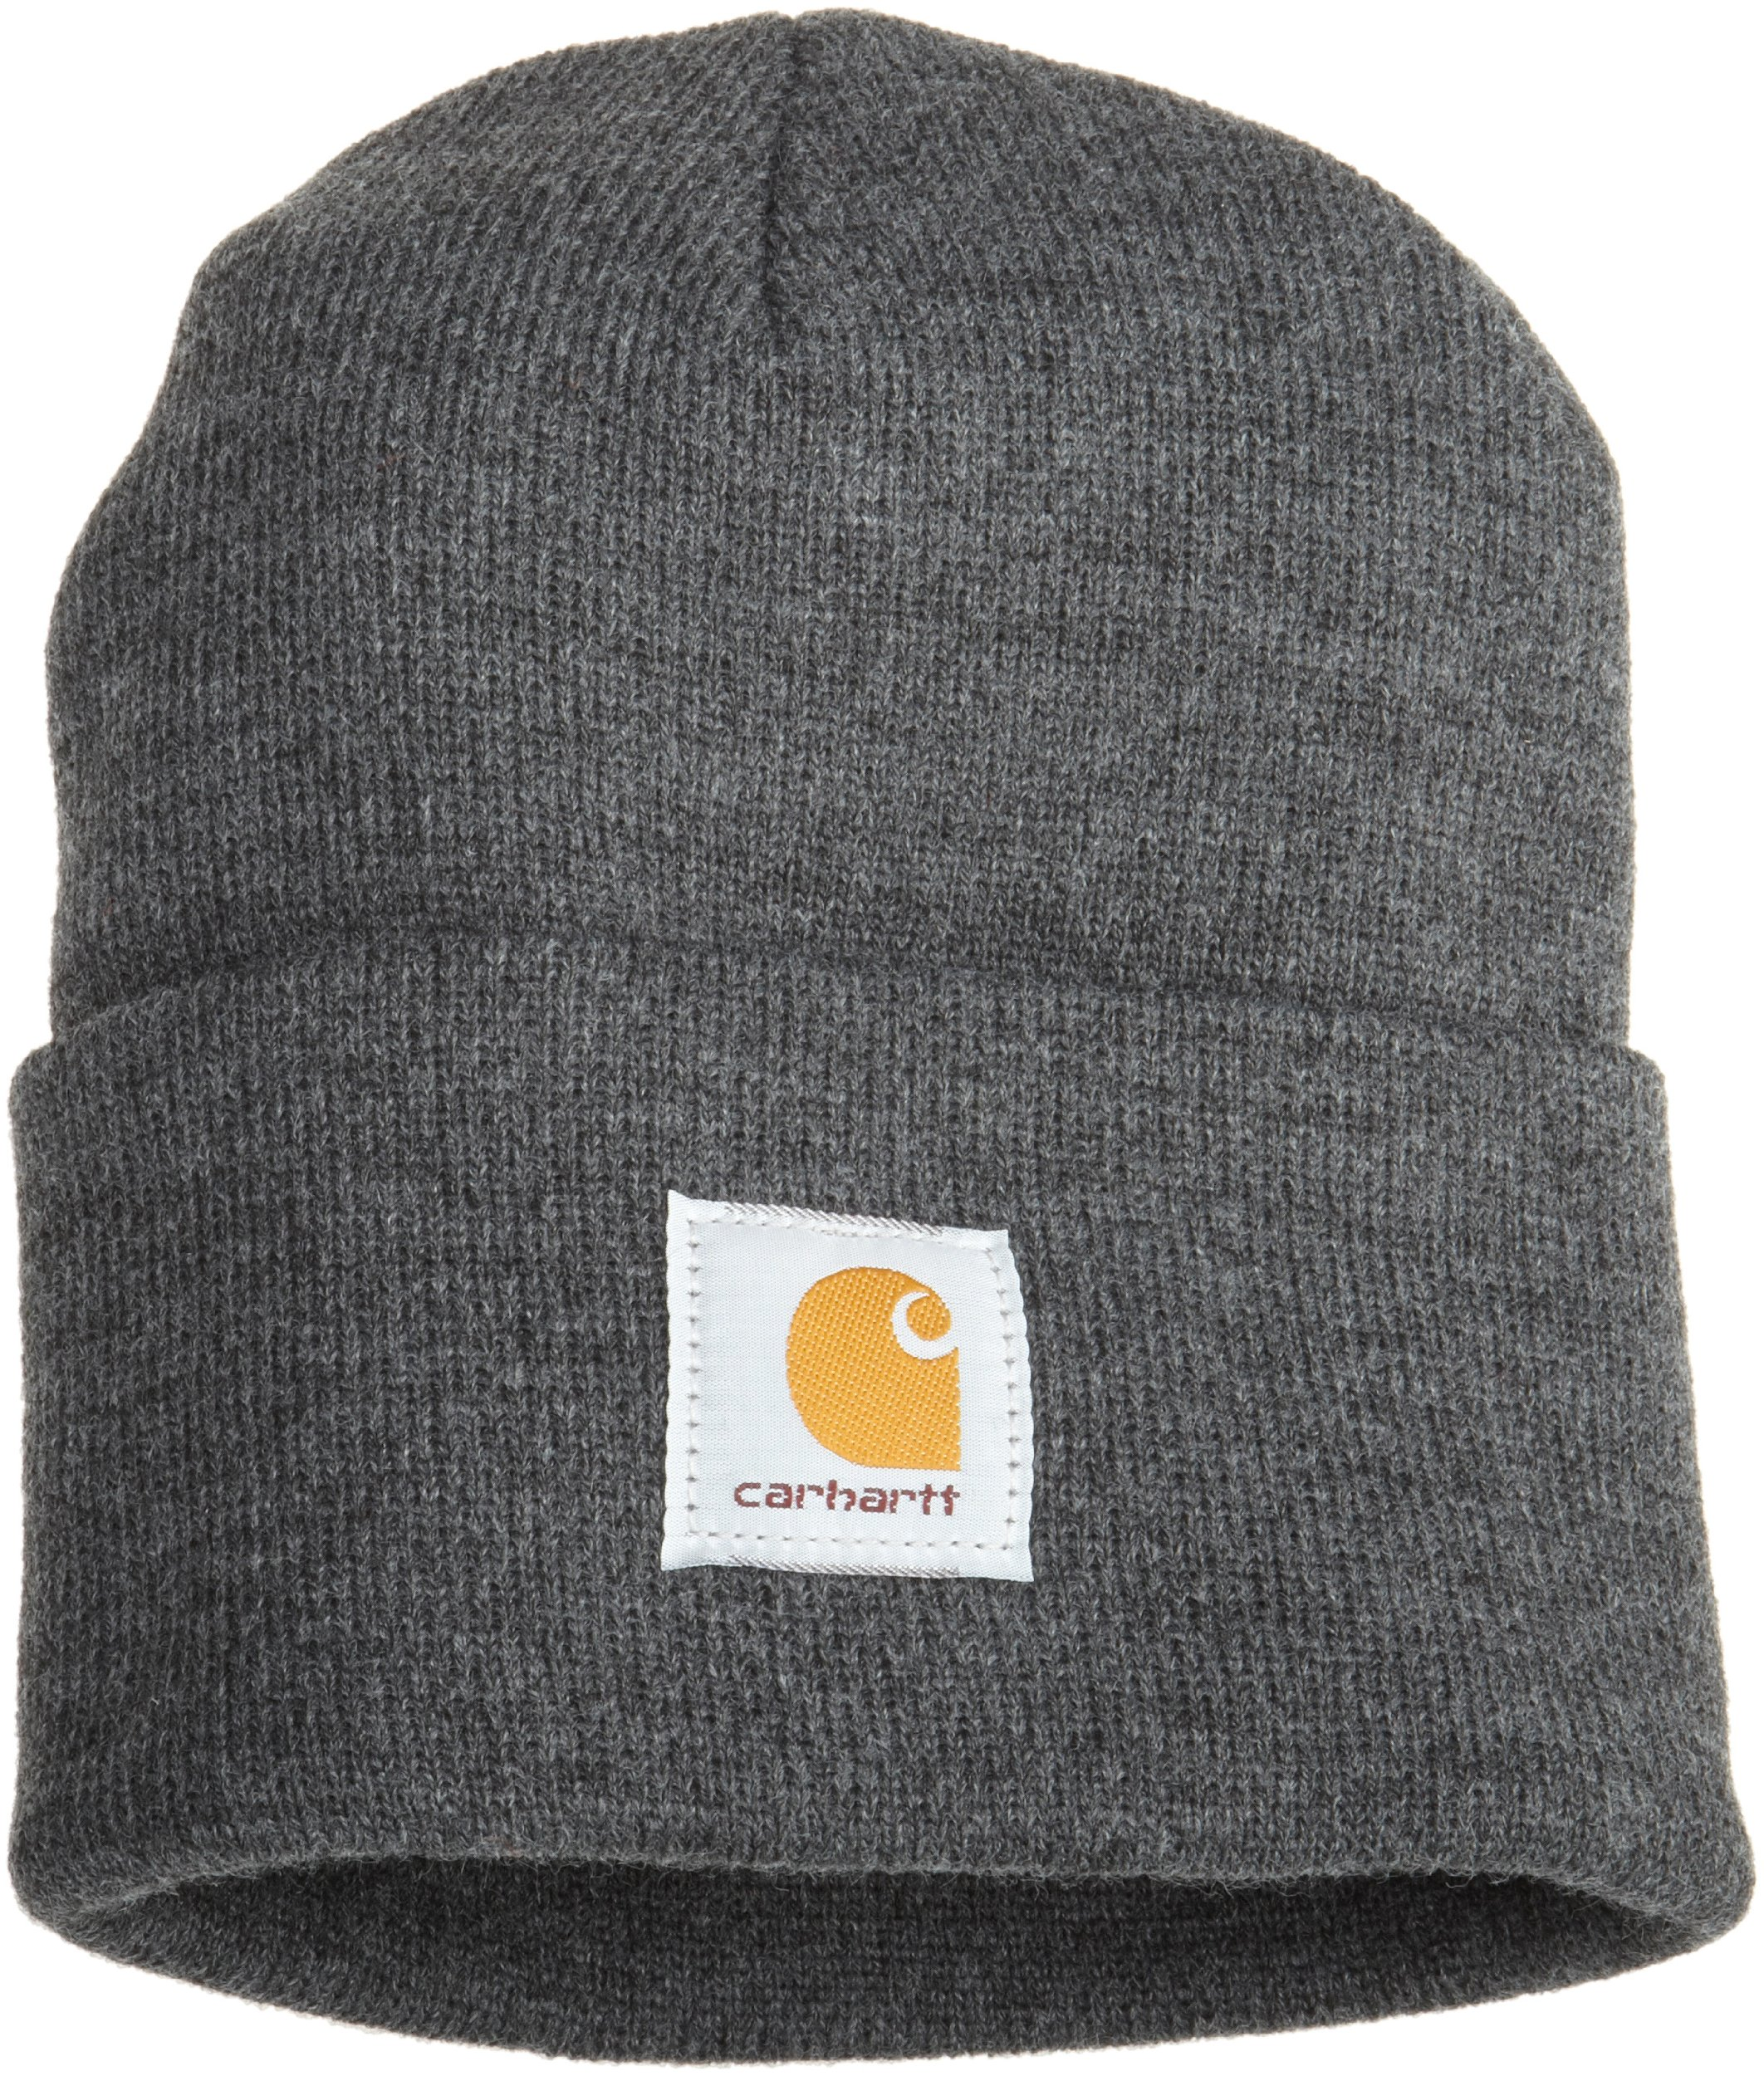 Carhartt Men's Acrylic Watch Hat A18, Coal Heather One Size